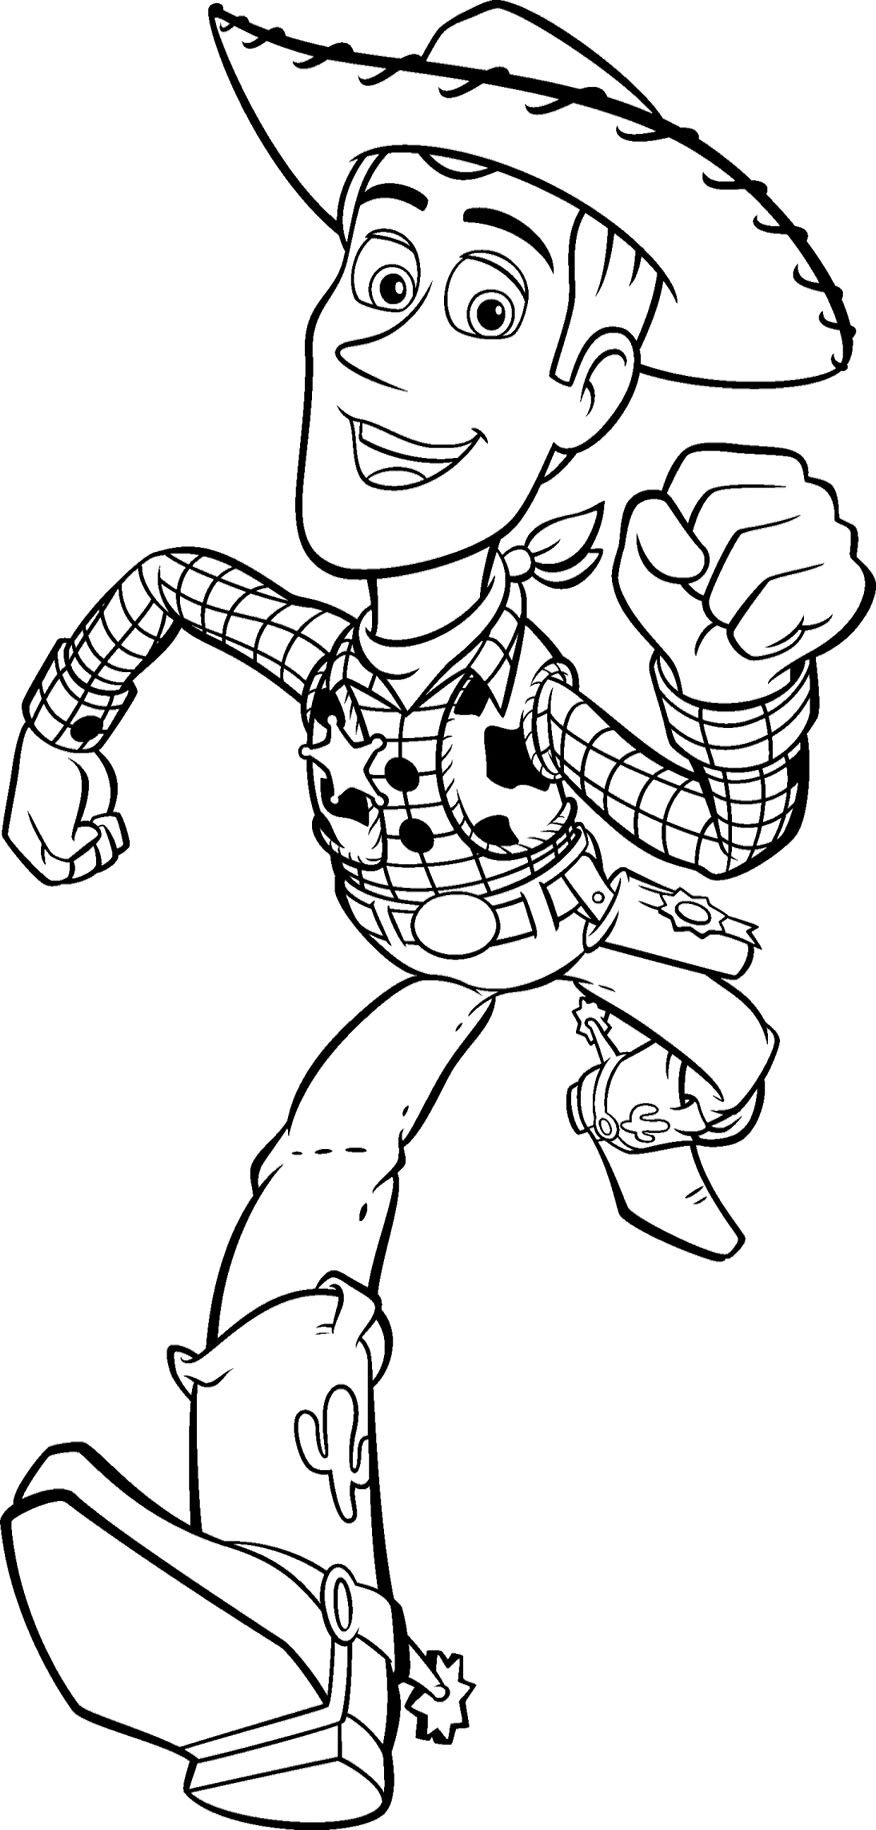 Toy Story Woody Runs Fast Coloring Pages education Pinterest